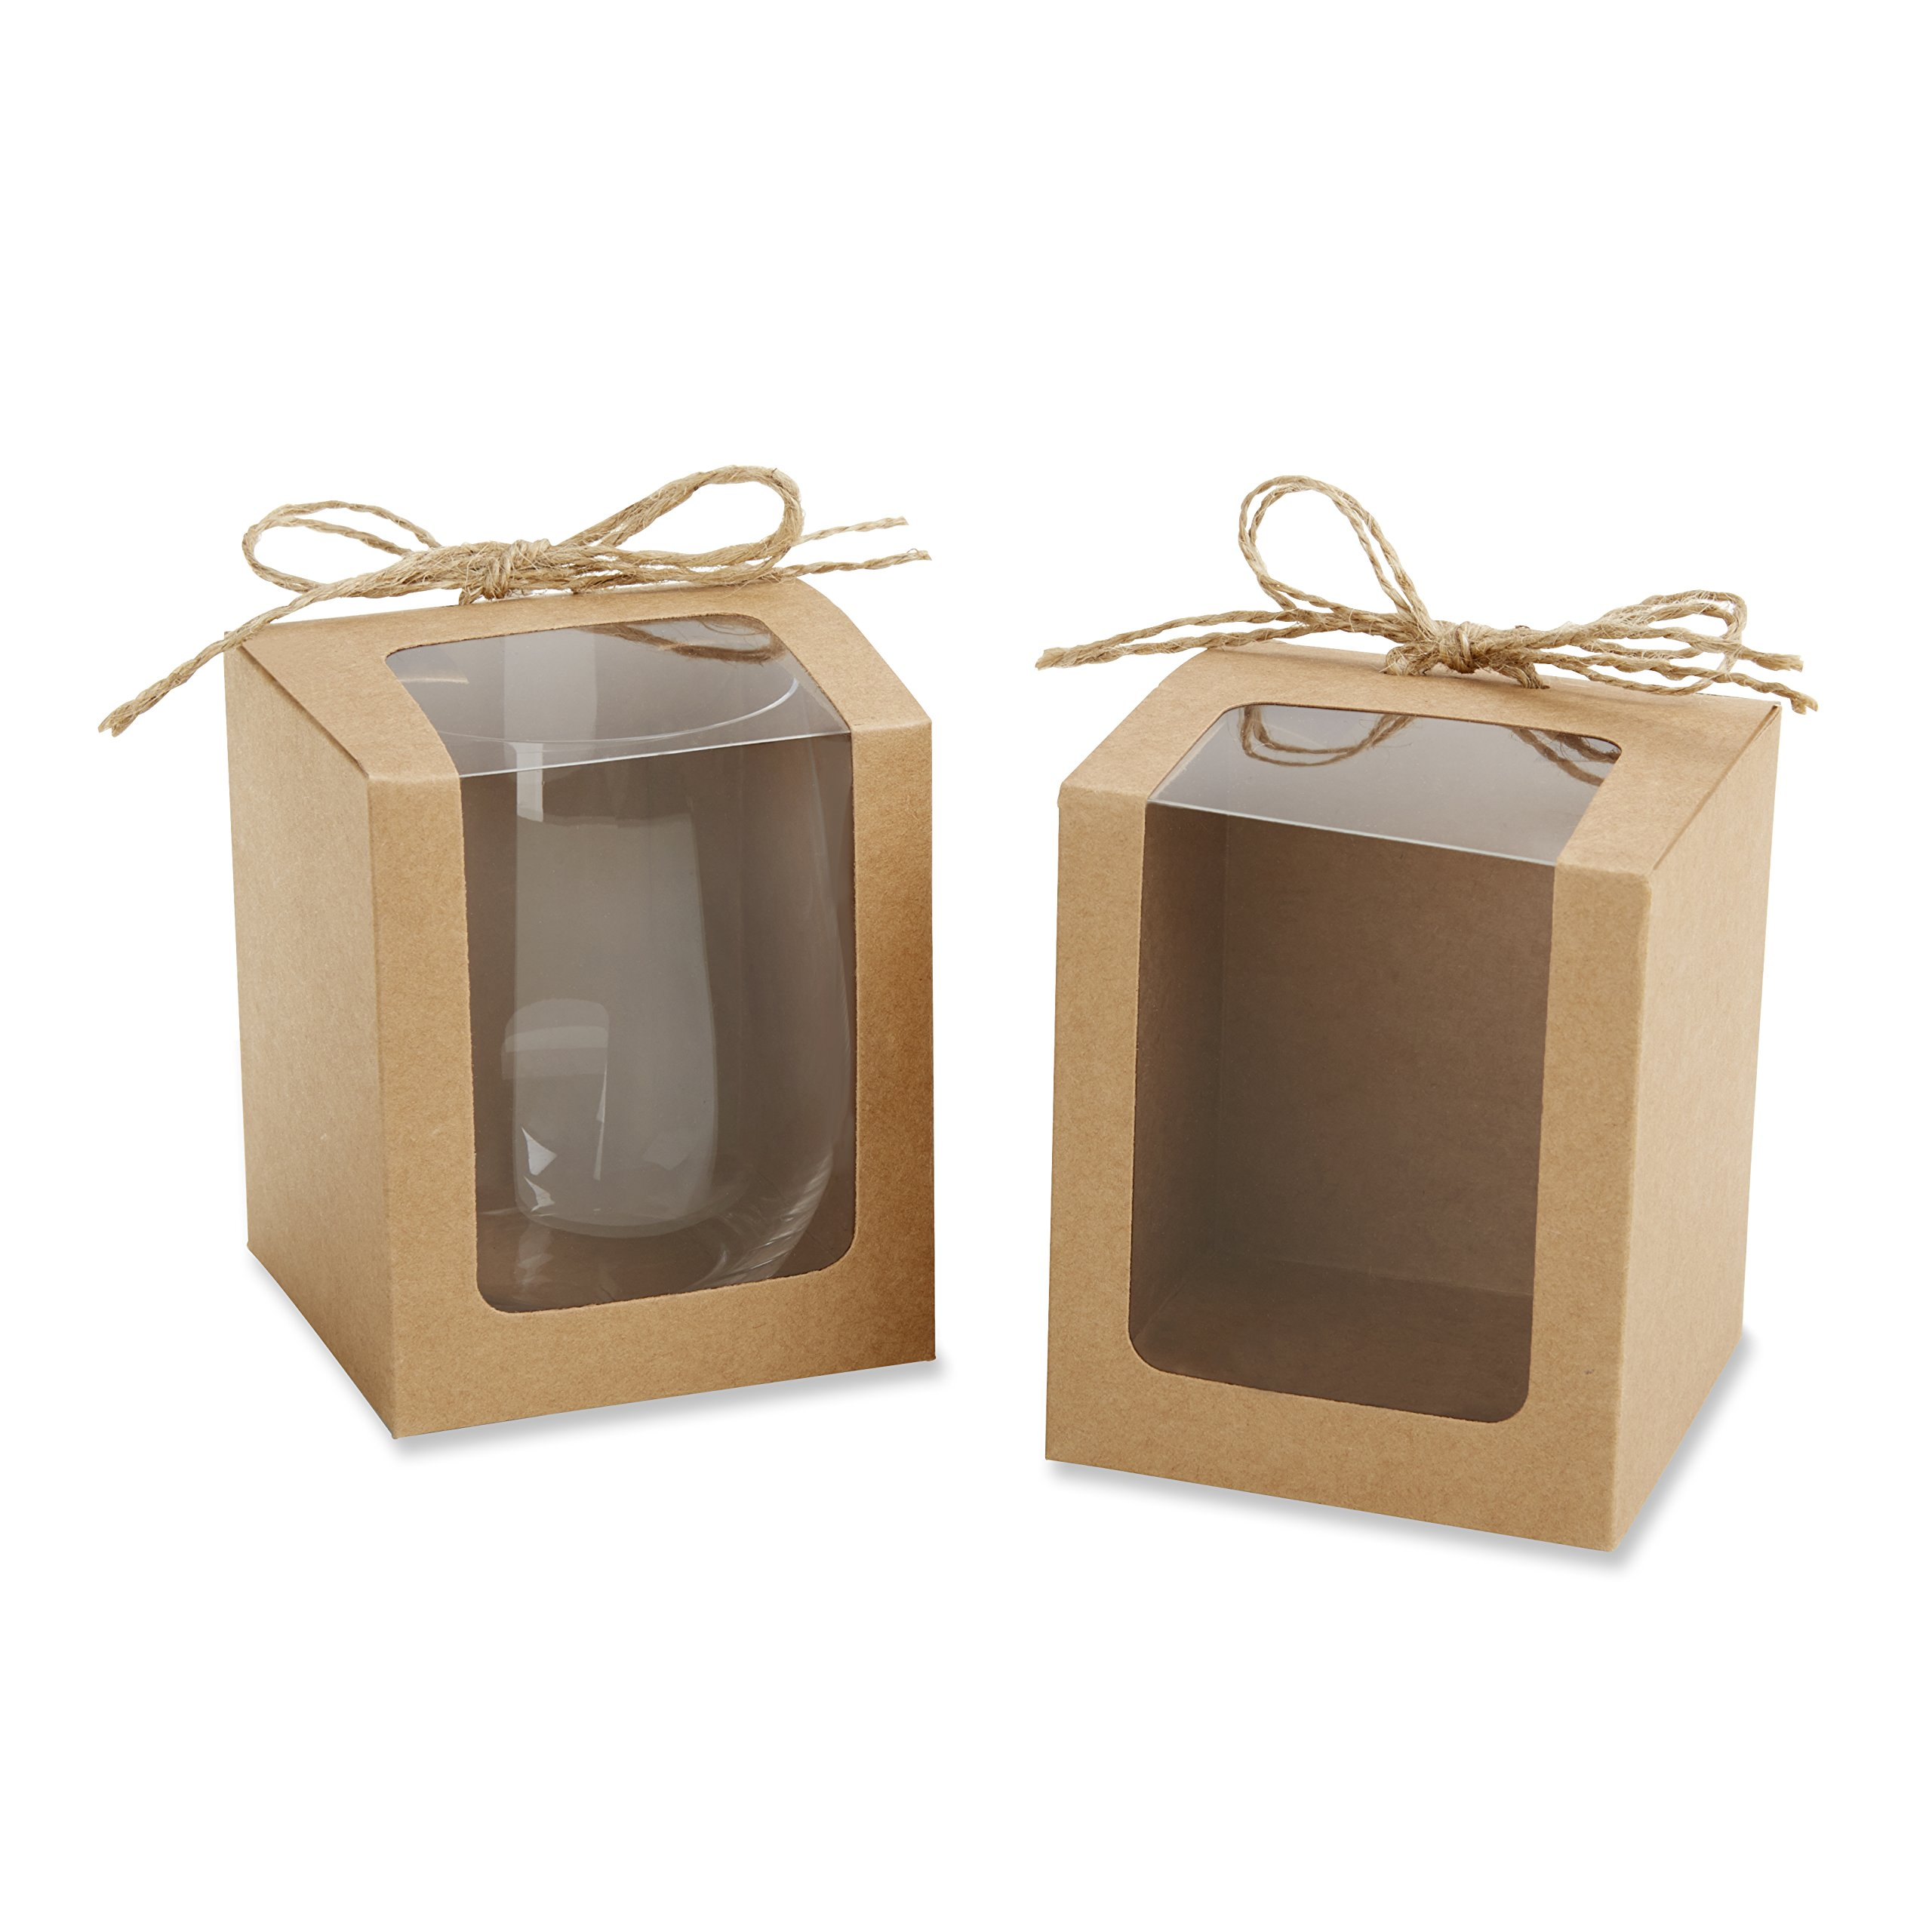 Kate Aspen Kraft Style Display Gift Boxes for Stemless Wine Glass, Wedding/Party Favors, 9-Ounce, Set of 12 by Kate Aspen (Image #1)